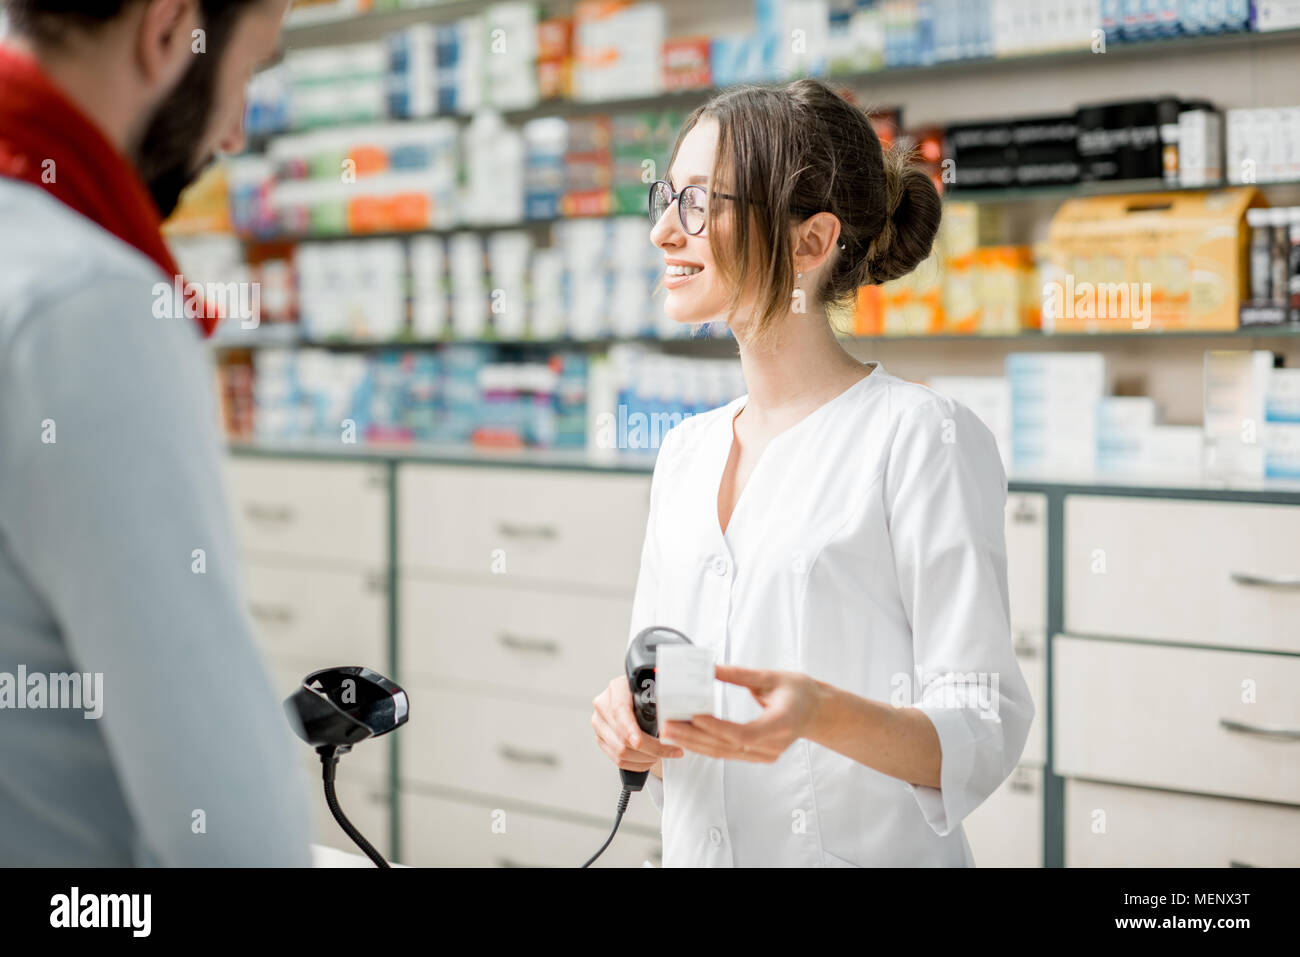 Pharmacist selling medications in the pharmacy store - Stock Image